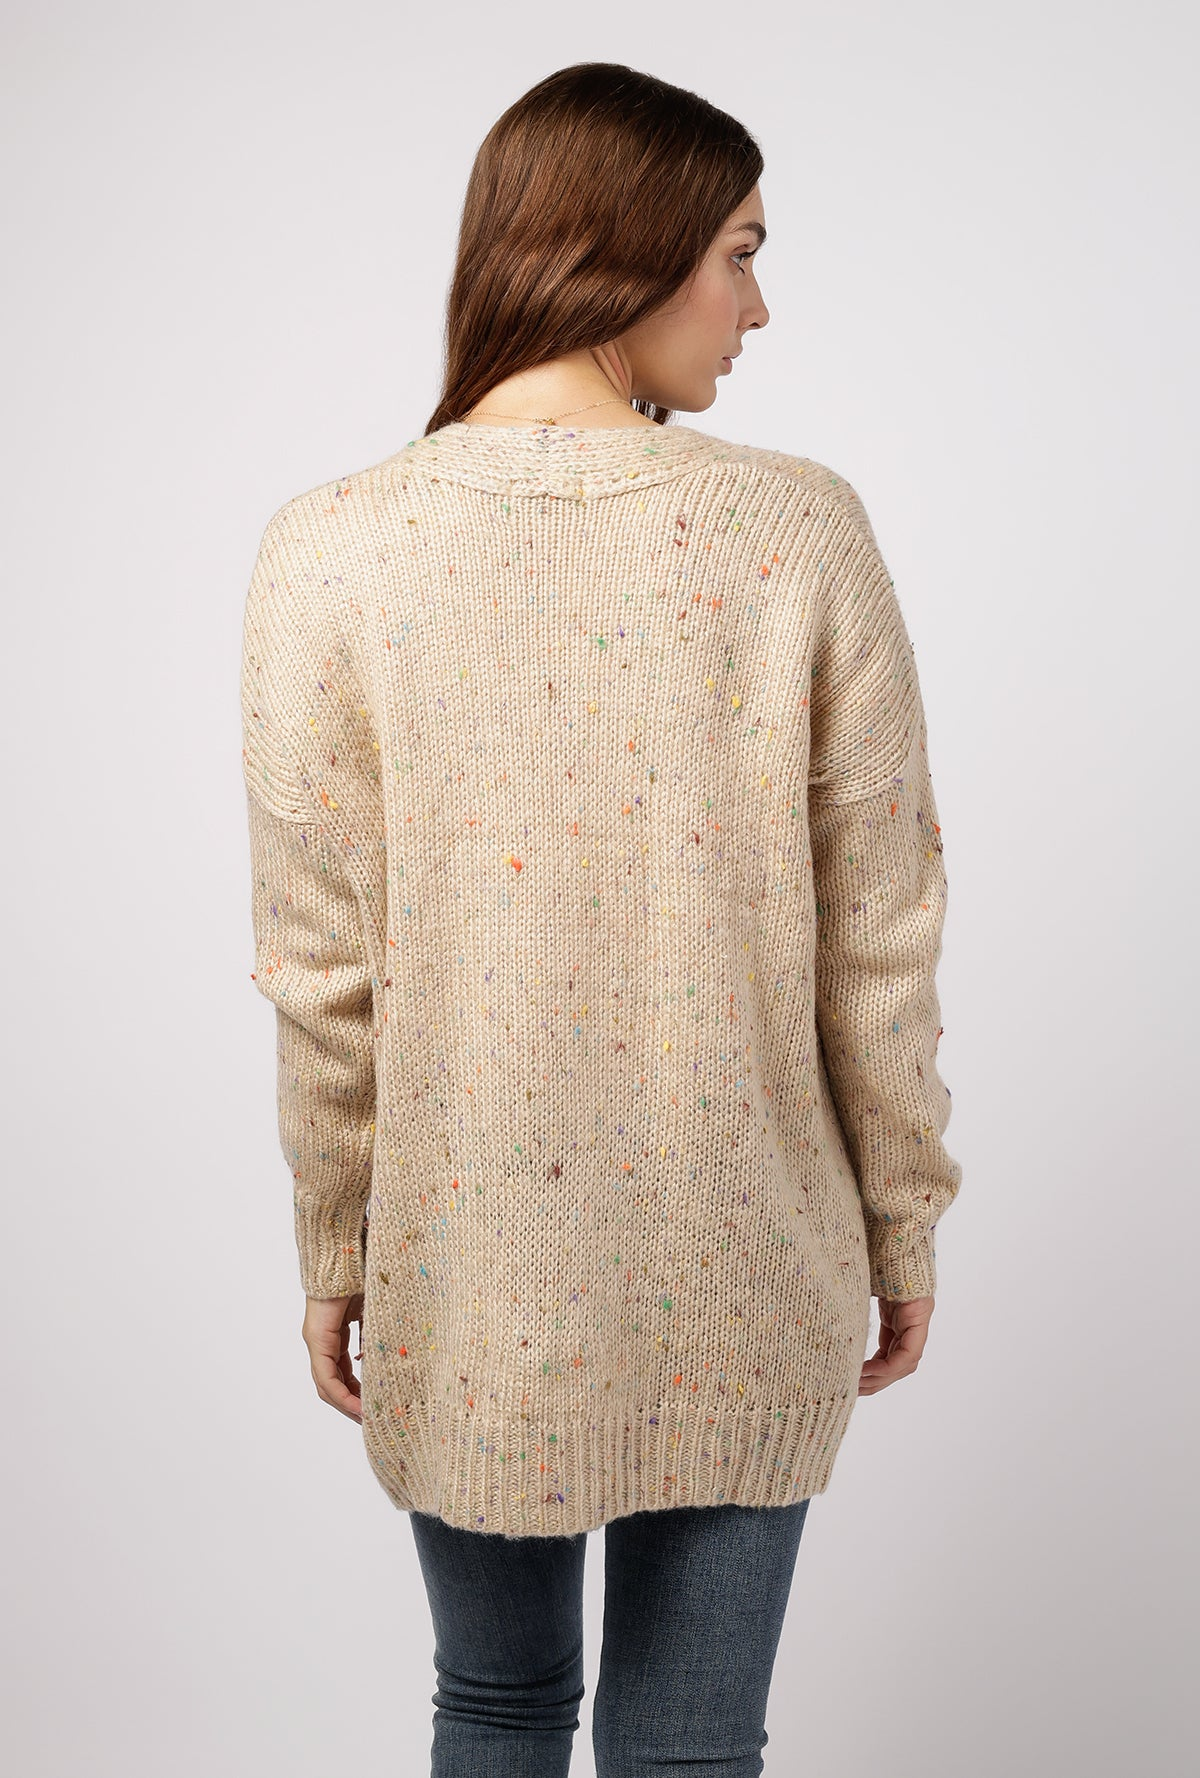 Multi Speckled Cardigan w/Pockets